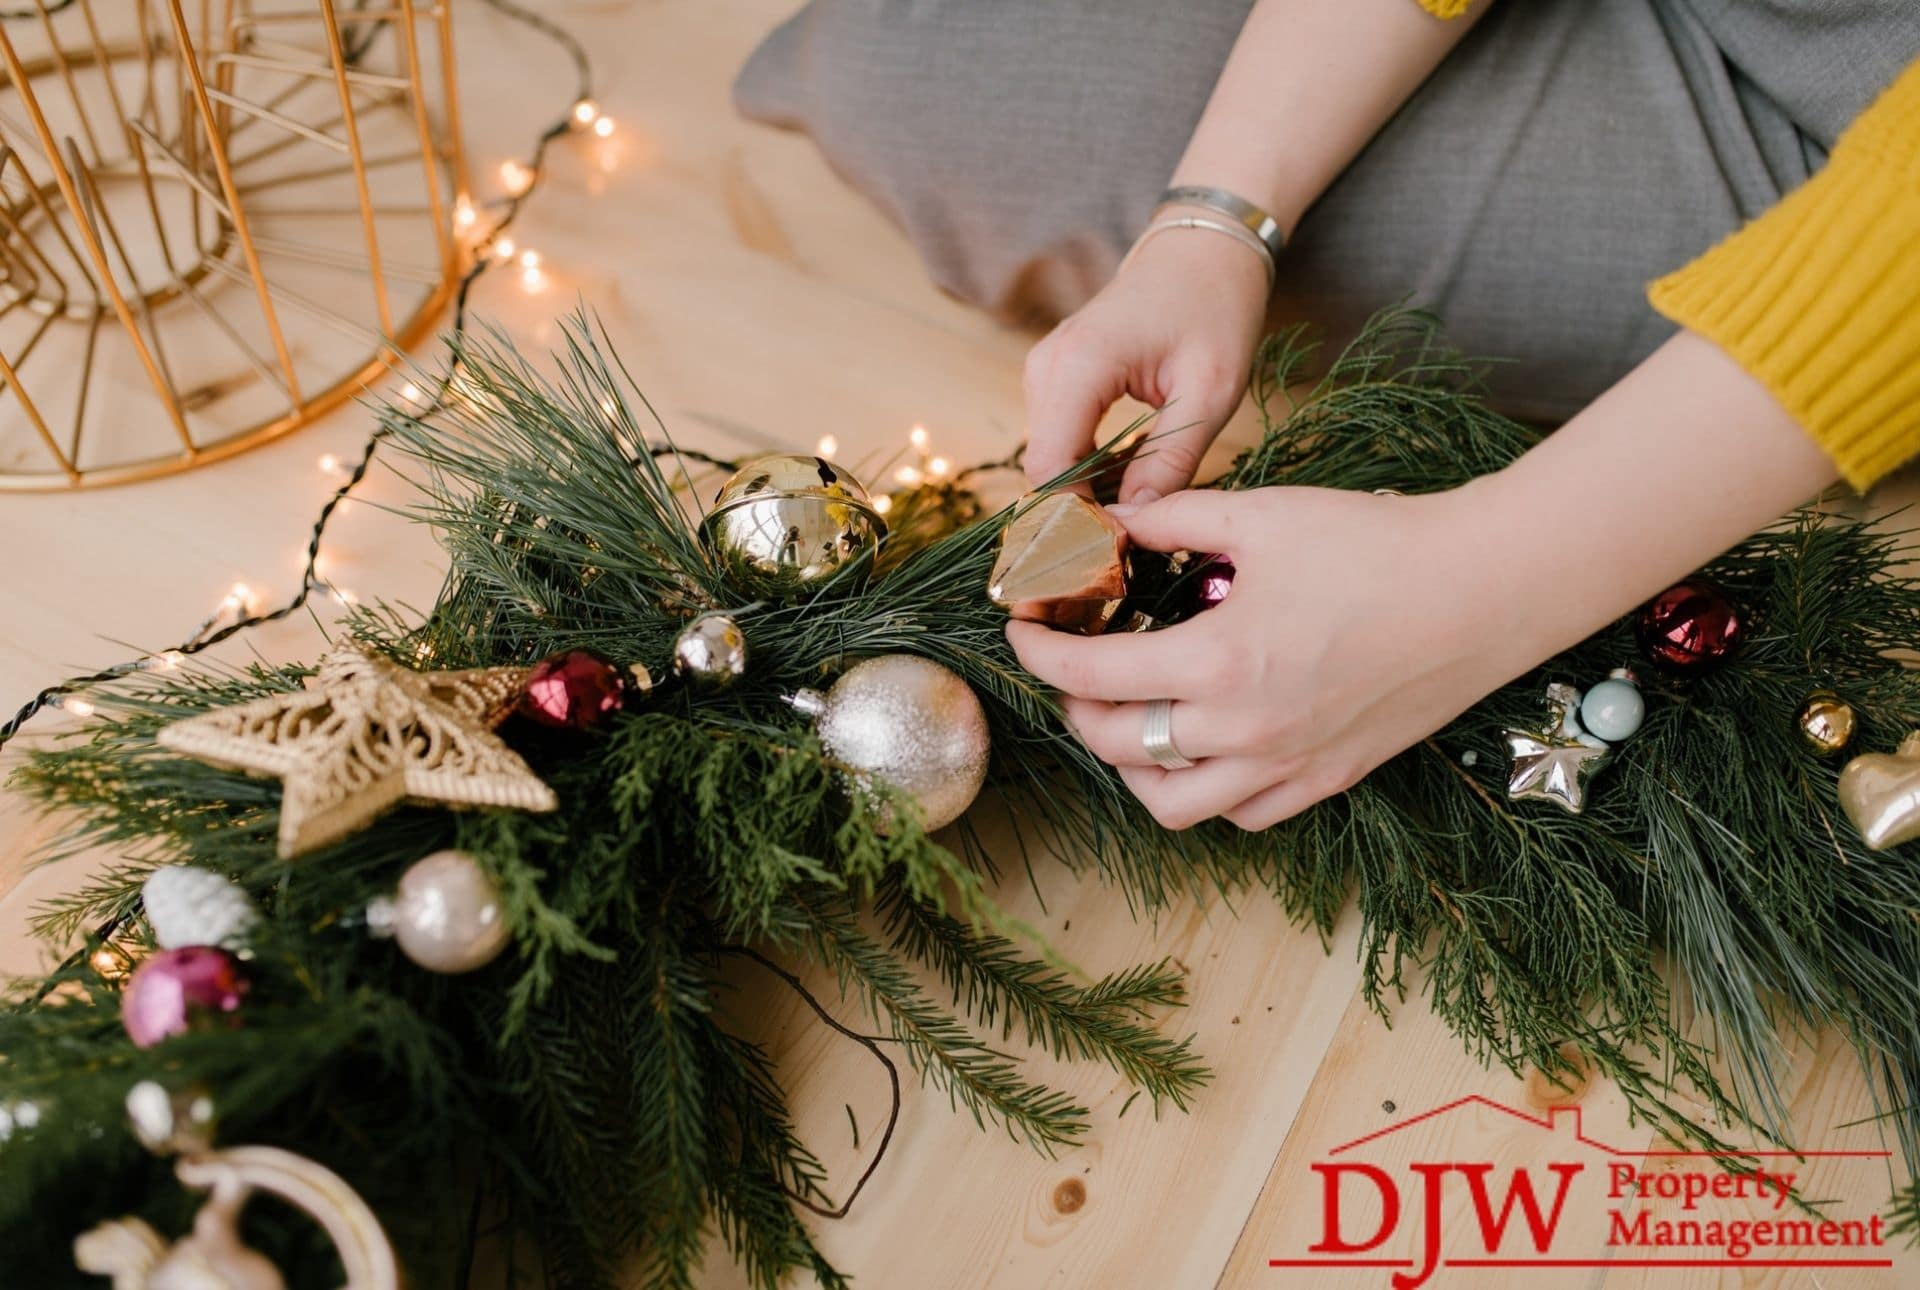 A woman makes a wreath from garland, twinkle lights, and tree ornaments.